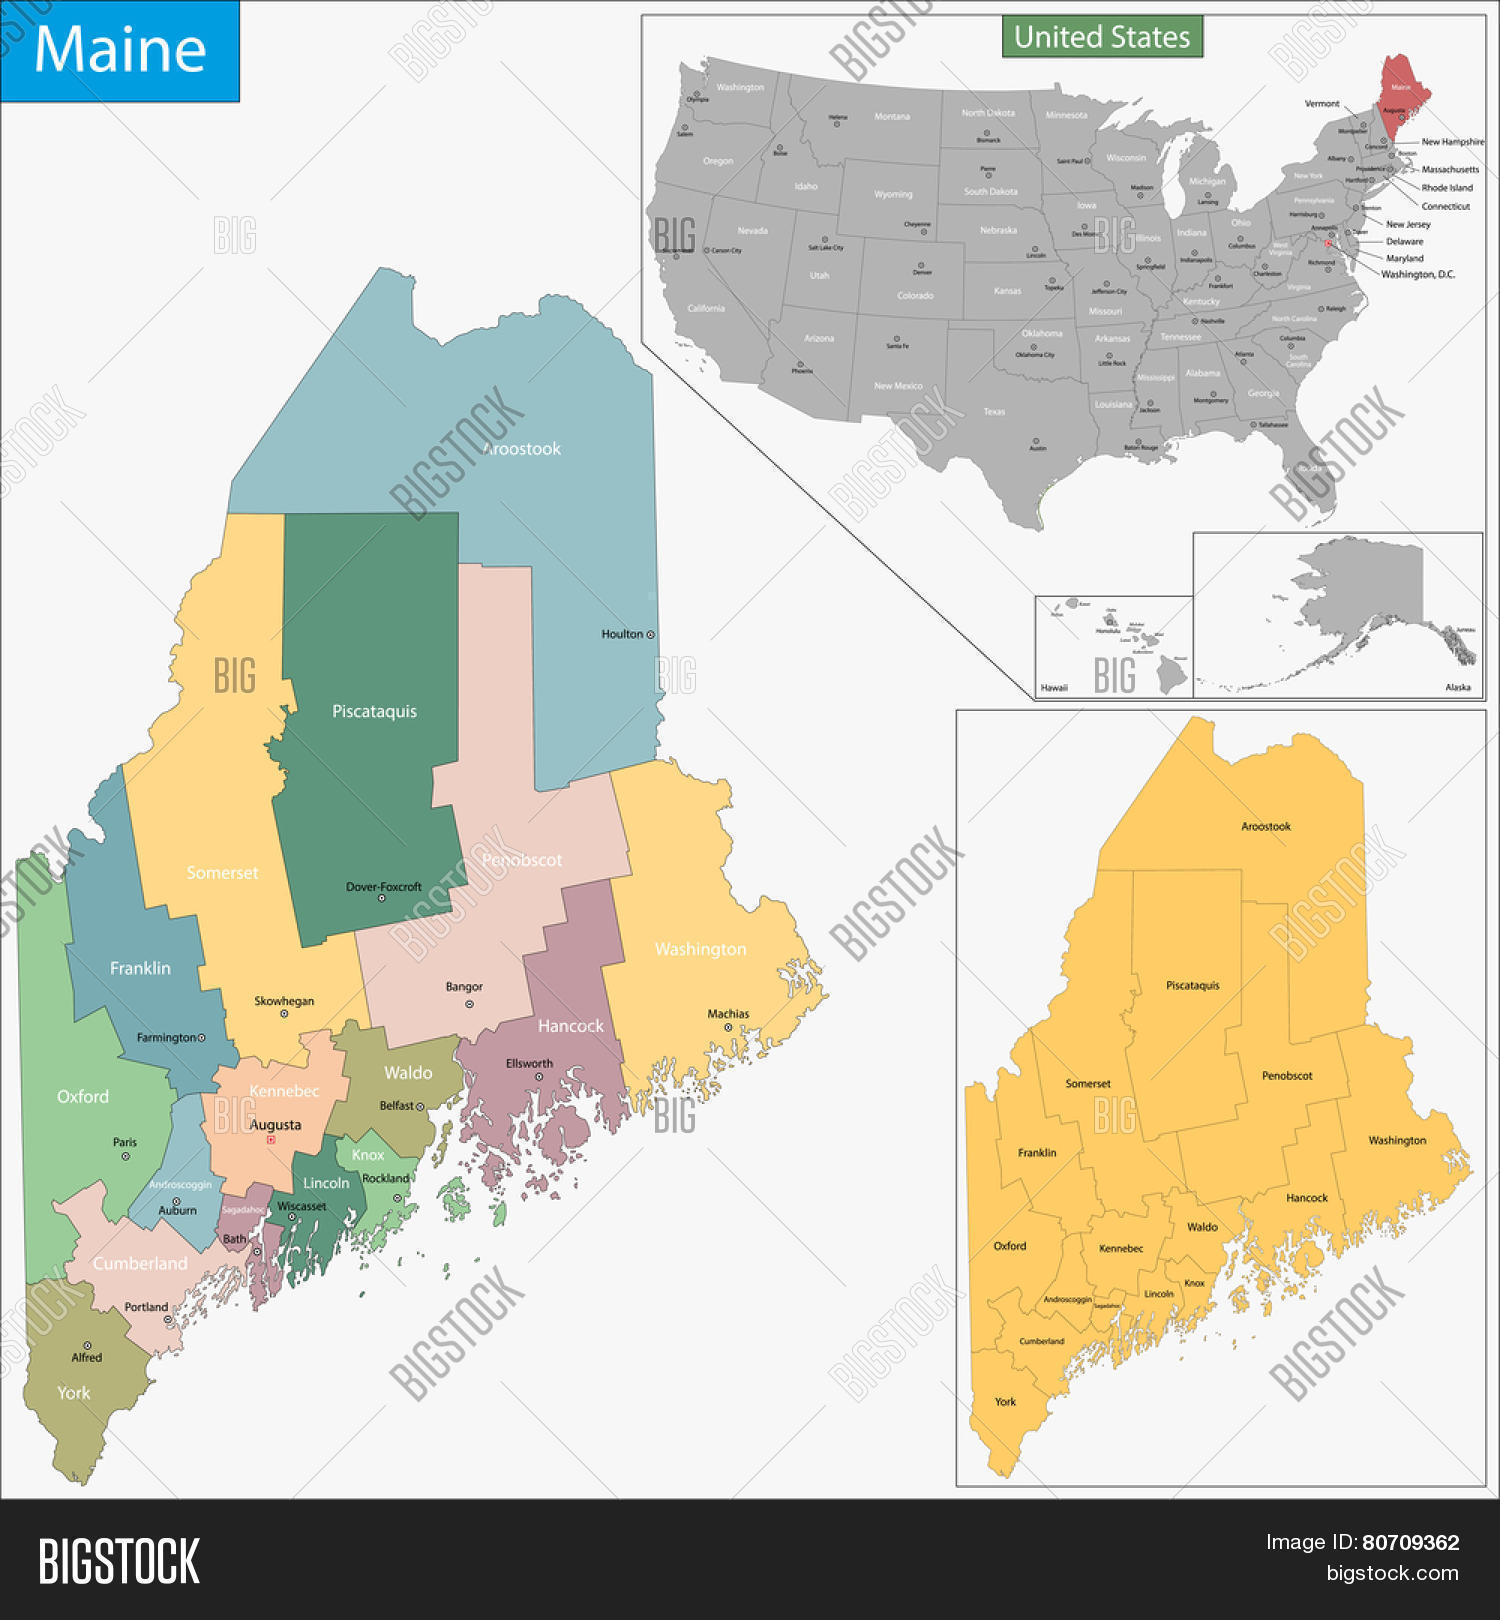 Map Maine State Image & Photo (Free Trial) | Bigstock